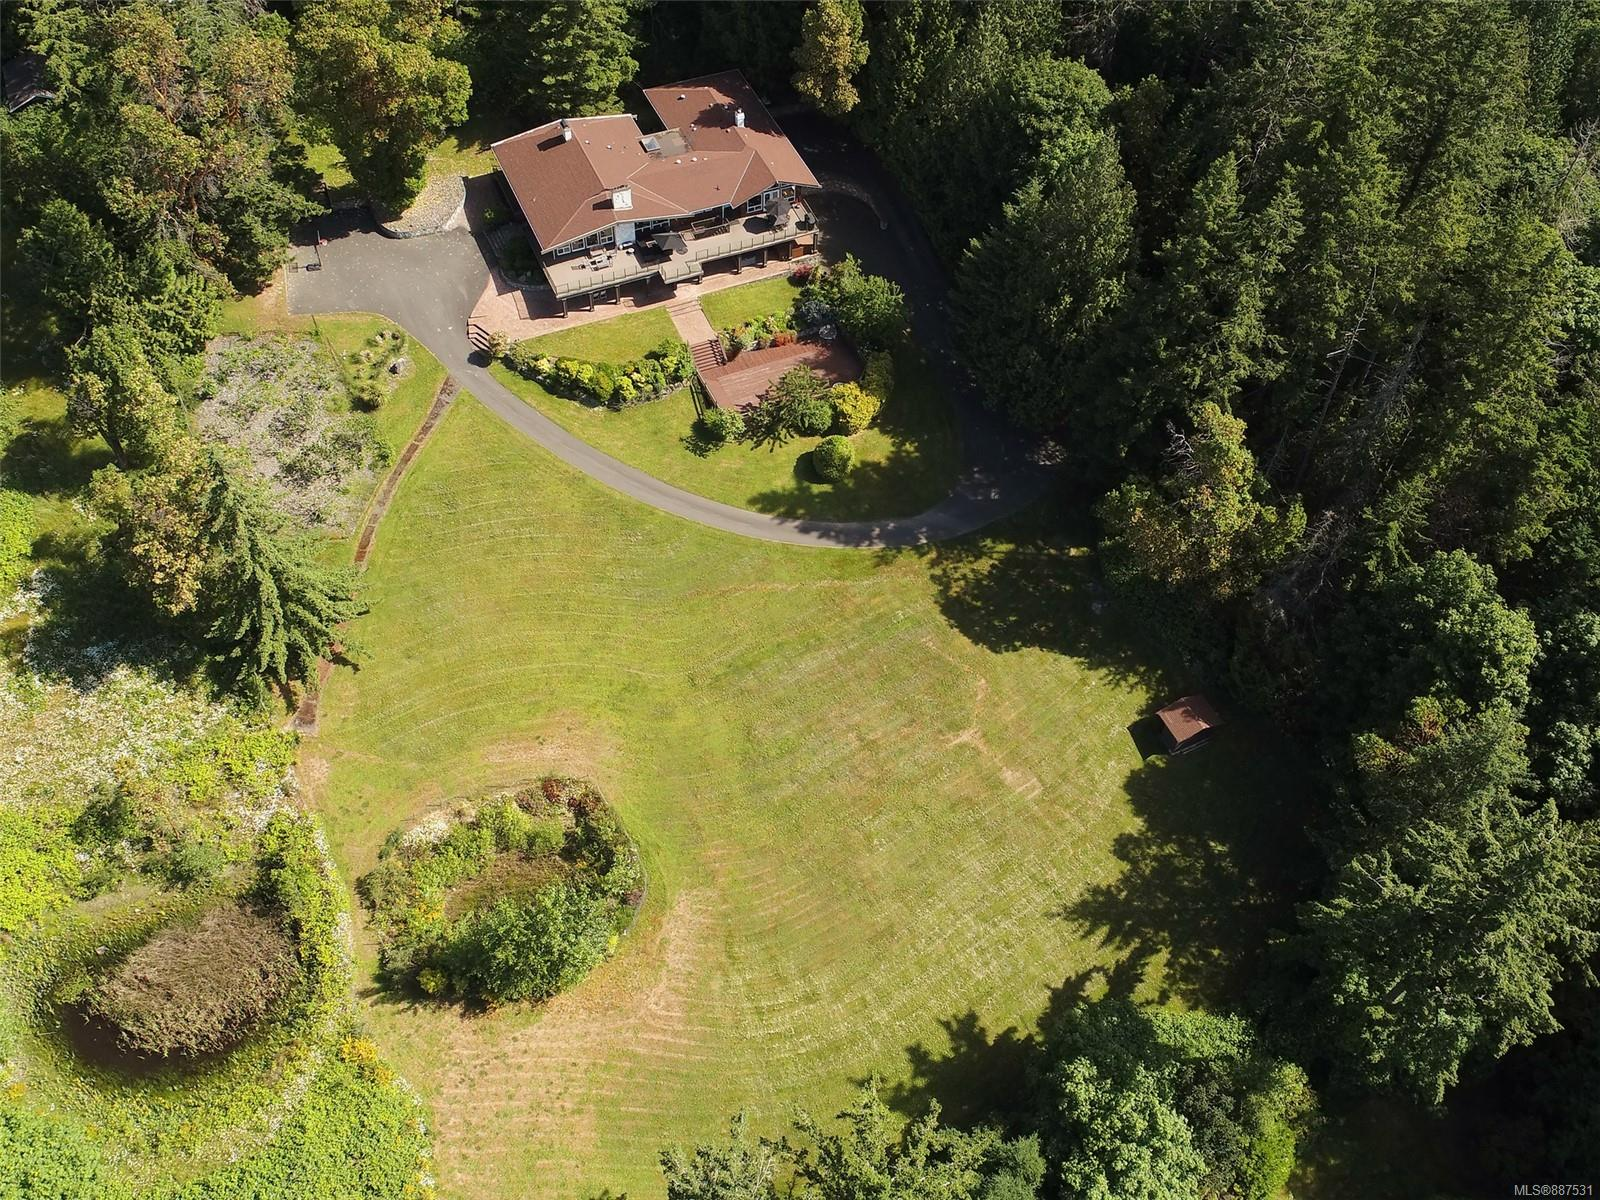 IMMEDIATE POSSESSION Exceptional 5 acre estate just 20 mins from downtown Victoria, yet a world away! Enjoy spectacular views across Elk Lake to the snowcapped Olympic Mountains. A south facing, gated, fenced & totally private sanctuary! Beautifully upgraded and renovated throughout. Almost 6000' of a flexible and open design offers perfect spaces for both family living and entertaining. Massive outdoor decking provides the perfect scene for summer gatherings. Chefs delight in the oversized gourmet kitchen with upgraded appliances and 6 burner stove. A spacious family room, casual eating area, formal living & dining areas round out the estate feel of this residence! Garage parking for 5 vehicles PLUS totally self-contained separate guest accommodation. Lots of additional parking space, a fig tree grove, sweeping lawns and so much more....just steps from Elk Lake, walking trails, parks and all amenities.  A true oasis!  Priced below assessed value!